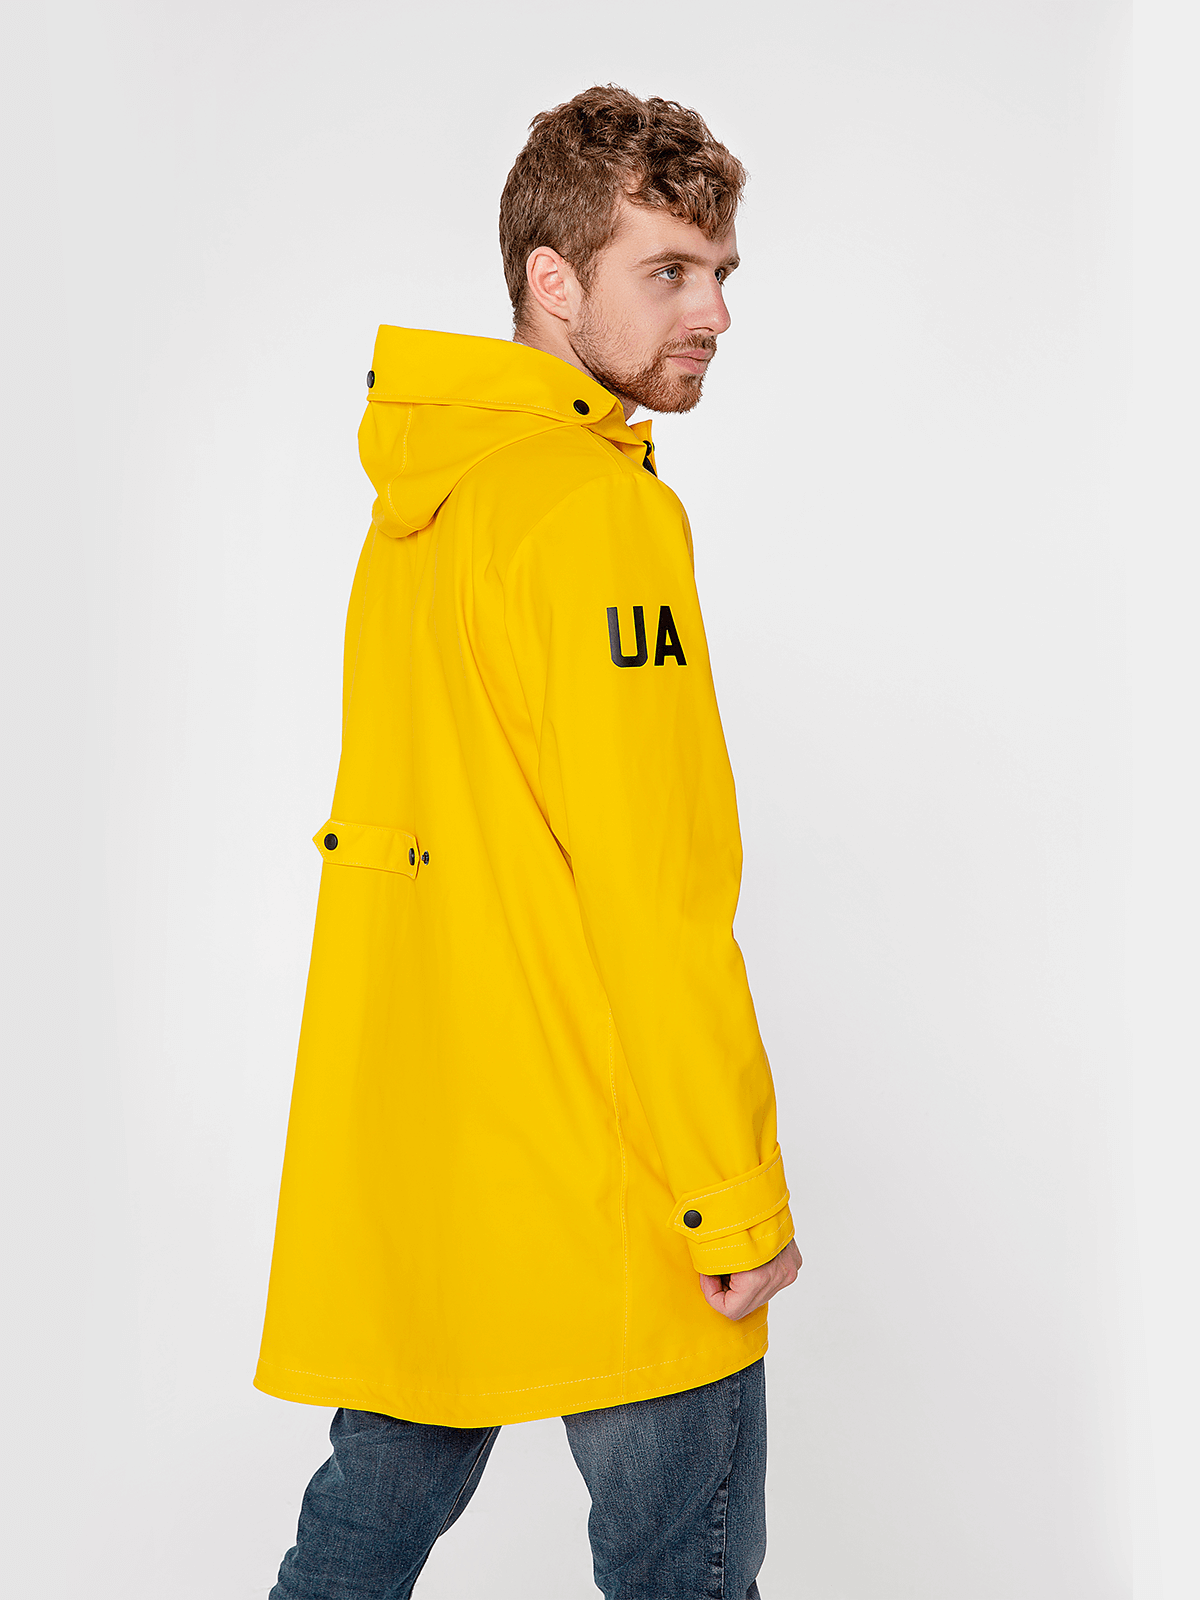 Men's Raincoat From Lviv With Rain. Color yellow. 2.